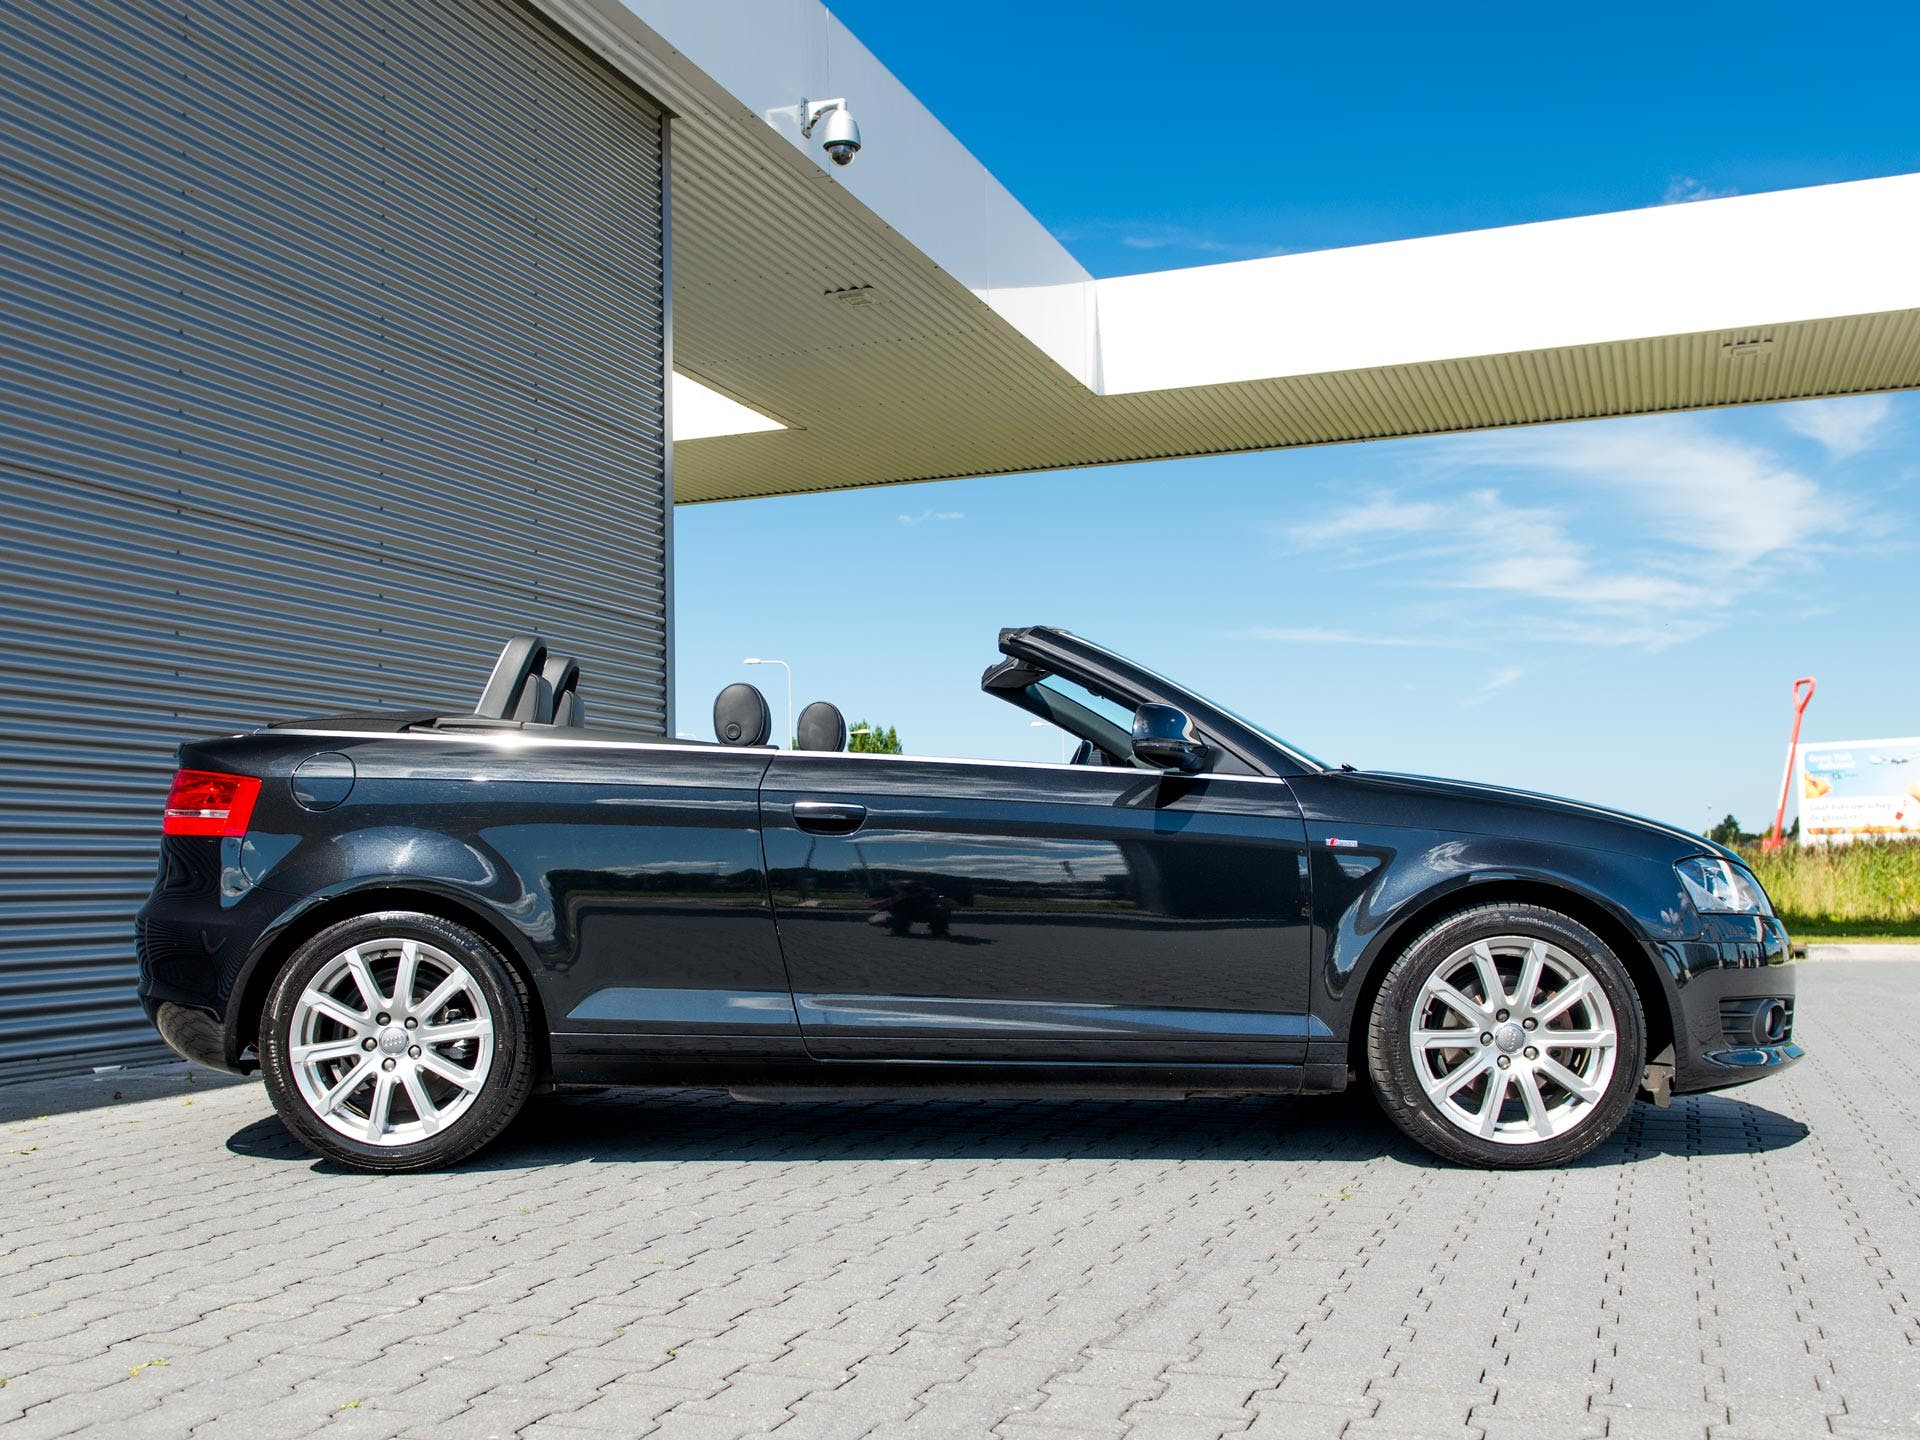 Tweedehands Audi A3 Cabriolet 2010 occasion